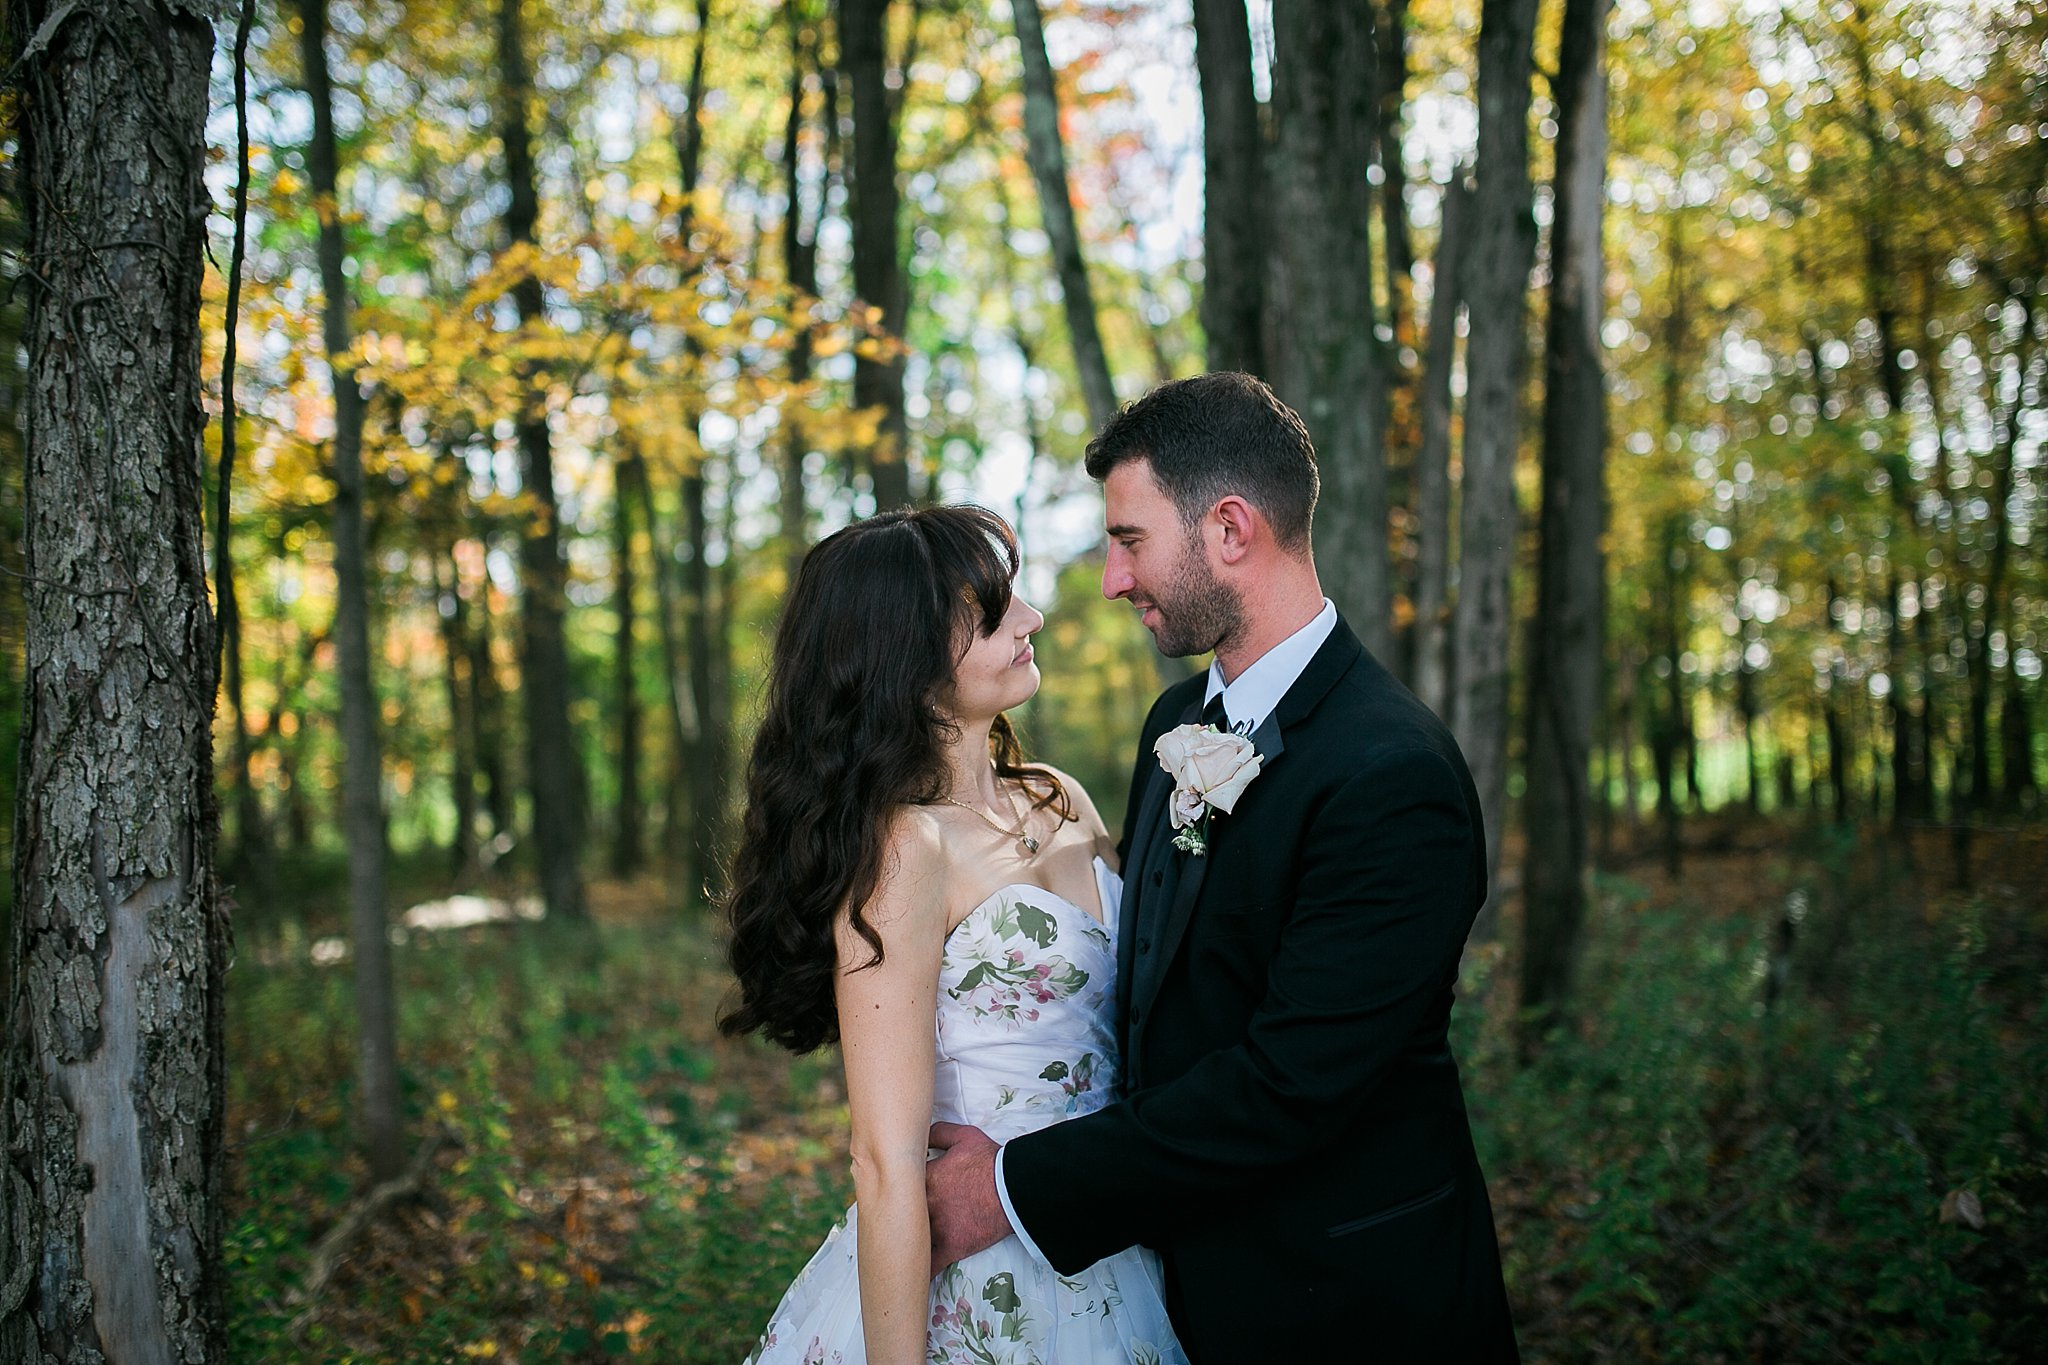 Magnanini Winery Wedding Hudson Valley Wedding Photographer Sweet Alice Photography 44.jpg